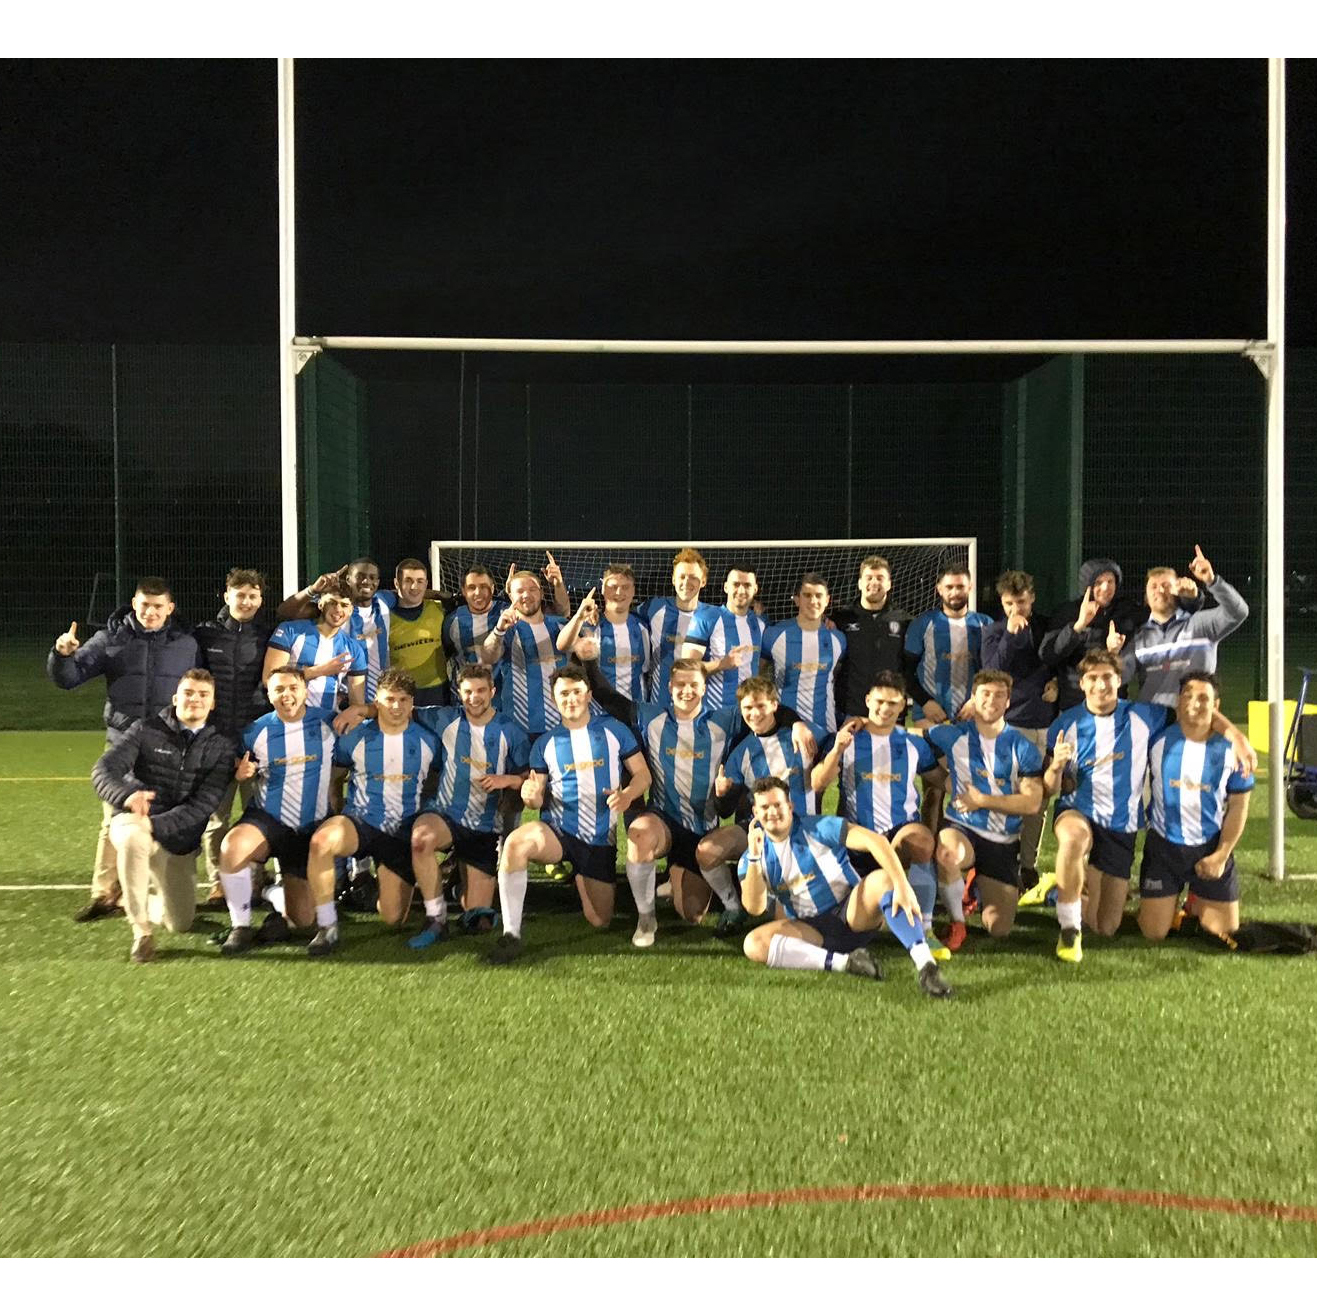 Photo of the Rugby Union team under some posts